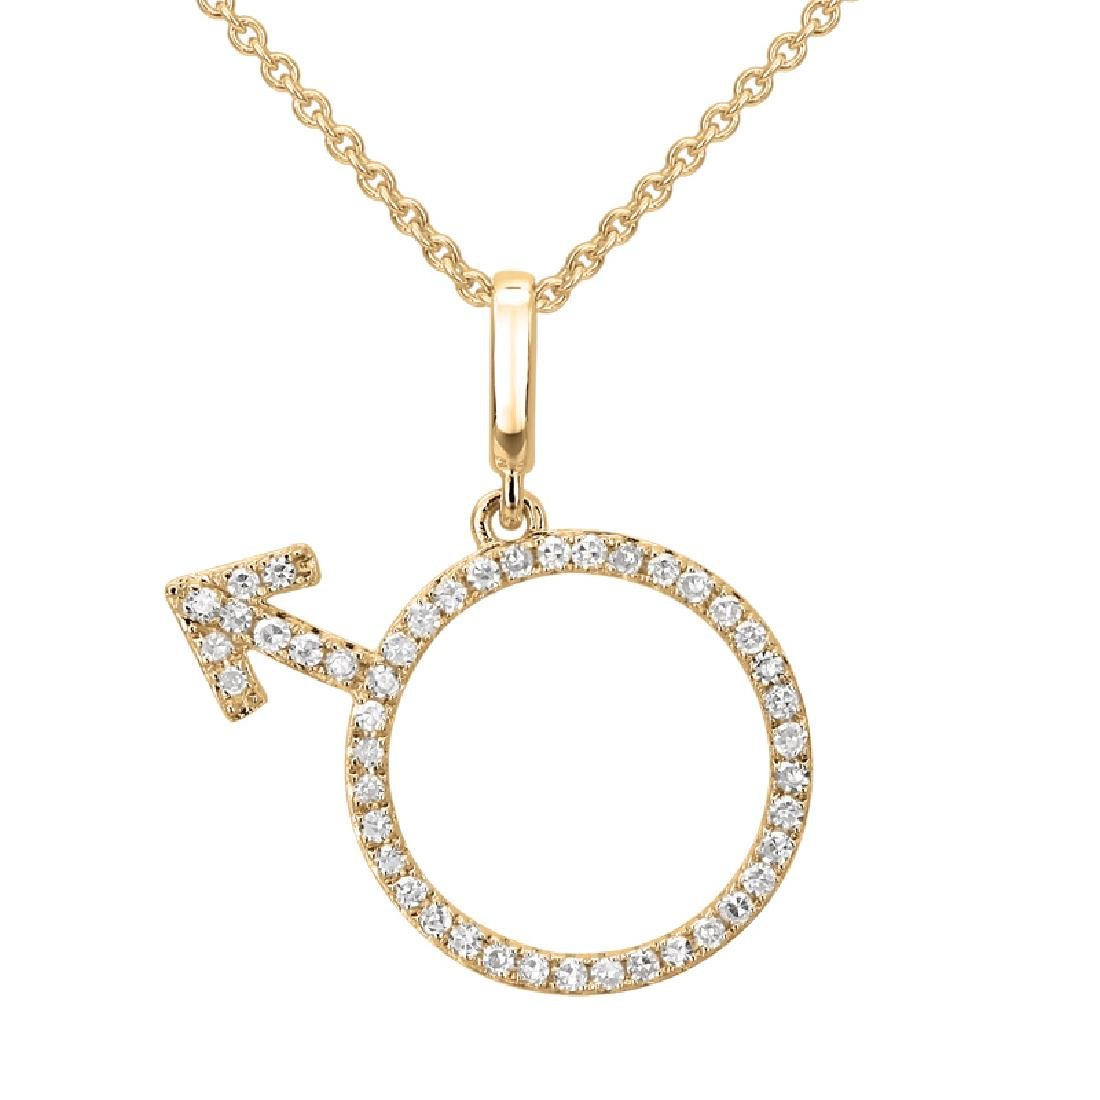 14KT Yellow Gold 0.14ctw Diamond Pendant With Chain